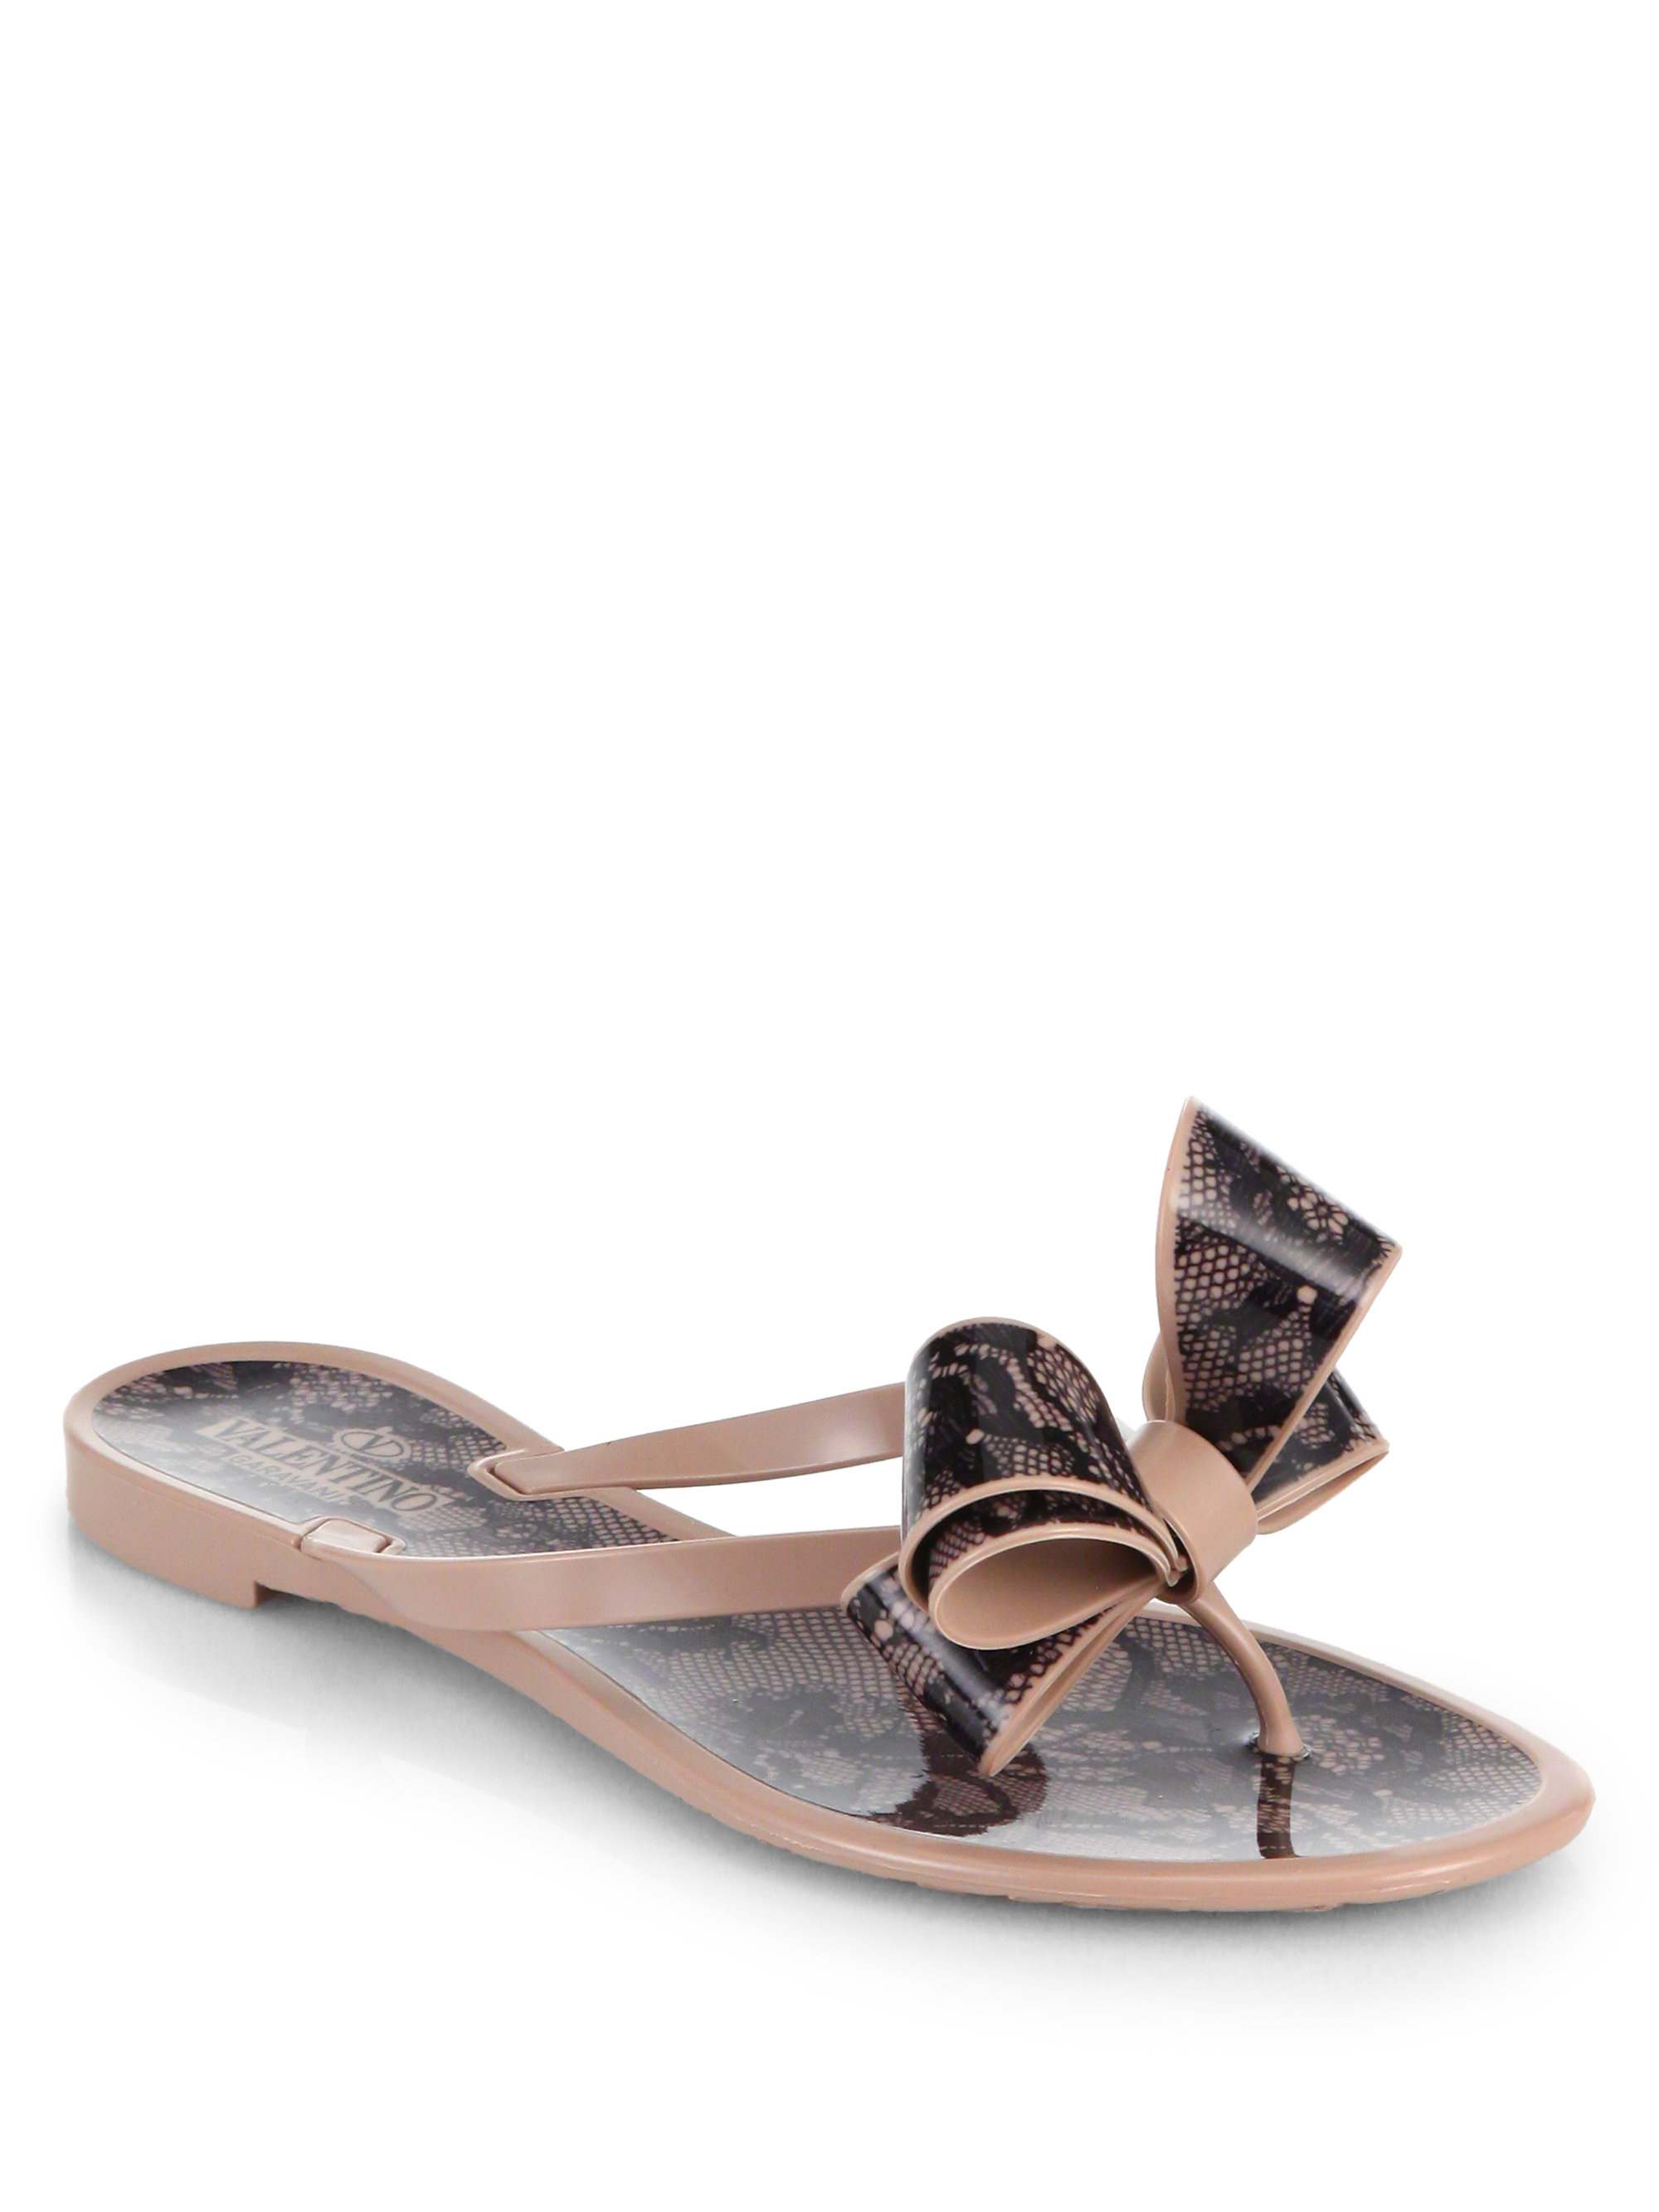 factory outlet for sale Valentino Lace Bow-Accented Sandals affordable online extremely sale online high quality cheap online XcrhmPC1NO